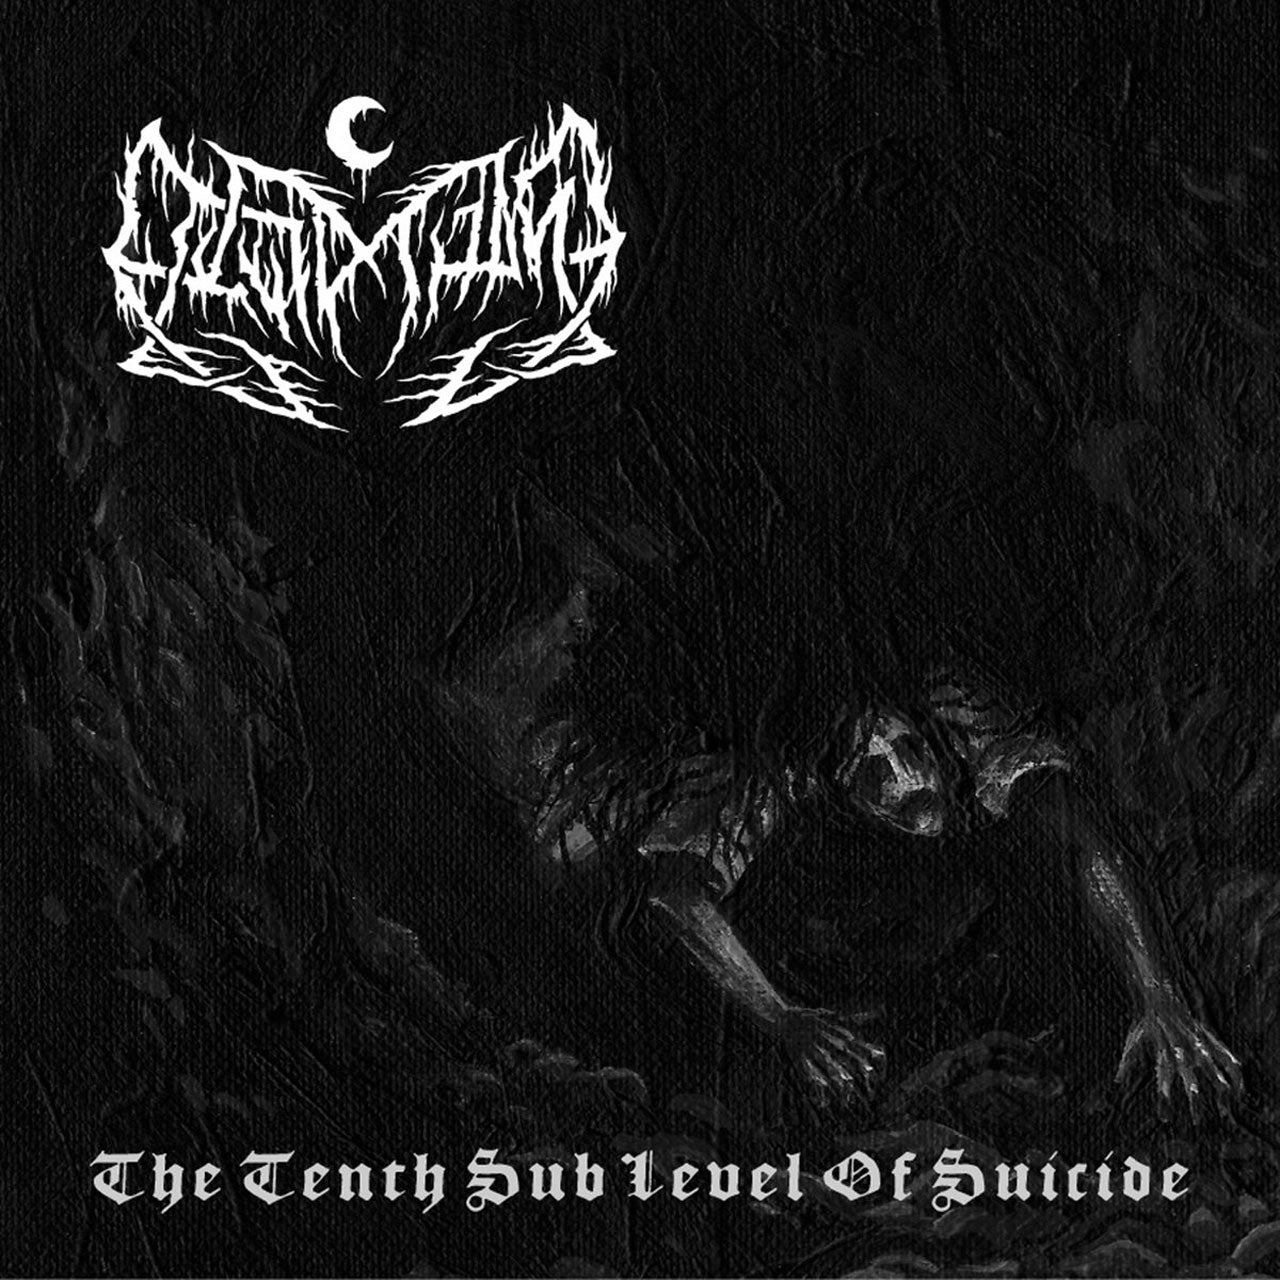 Leviathan - The Tenth Sub Level of Suicide (2018 Reissue) (2LP)